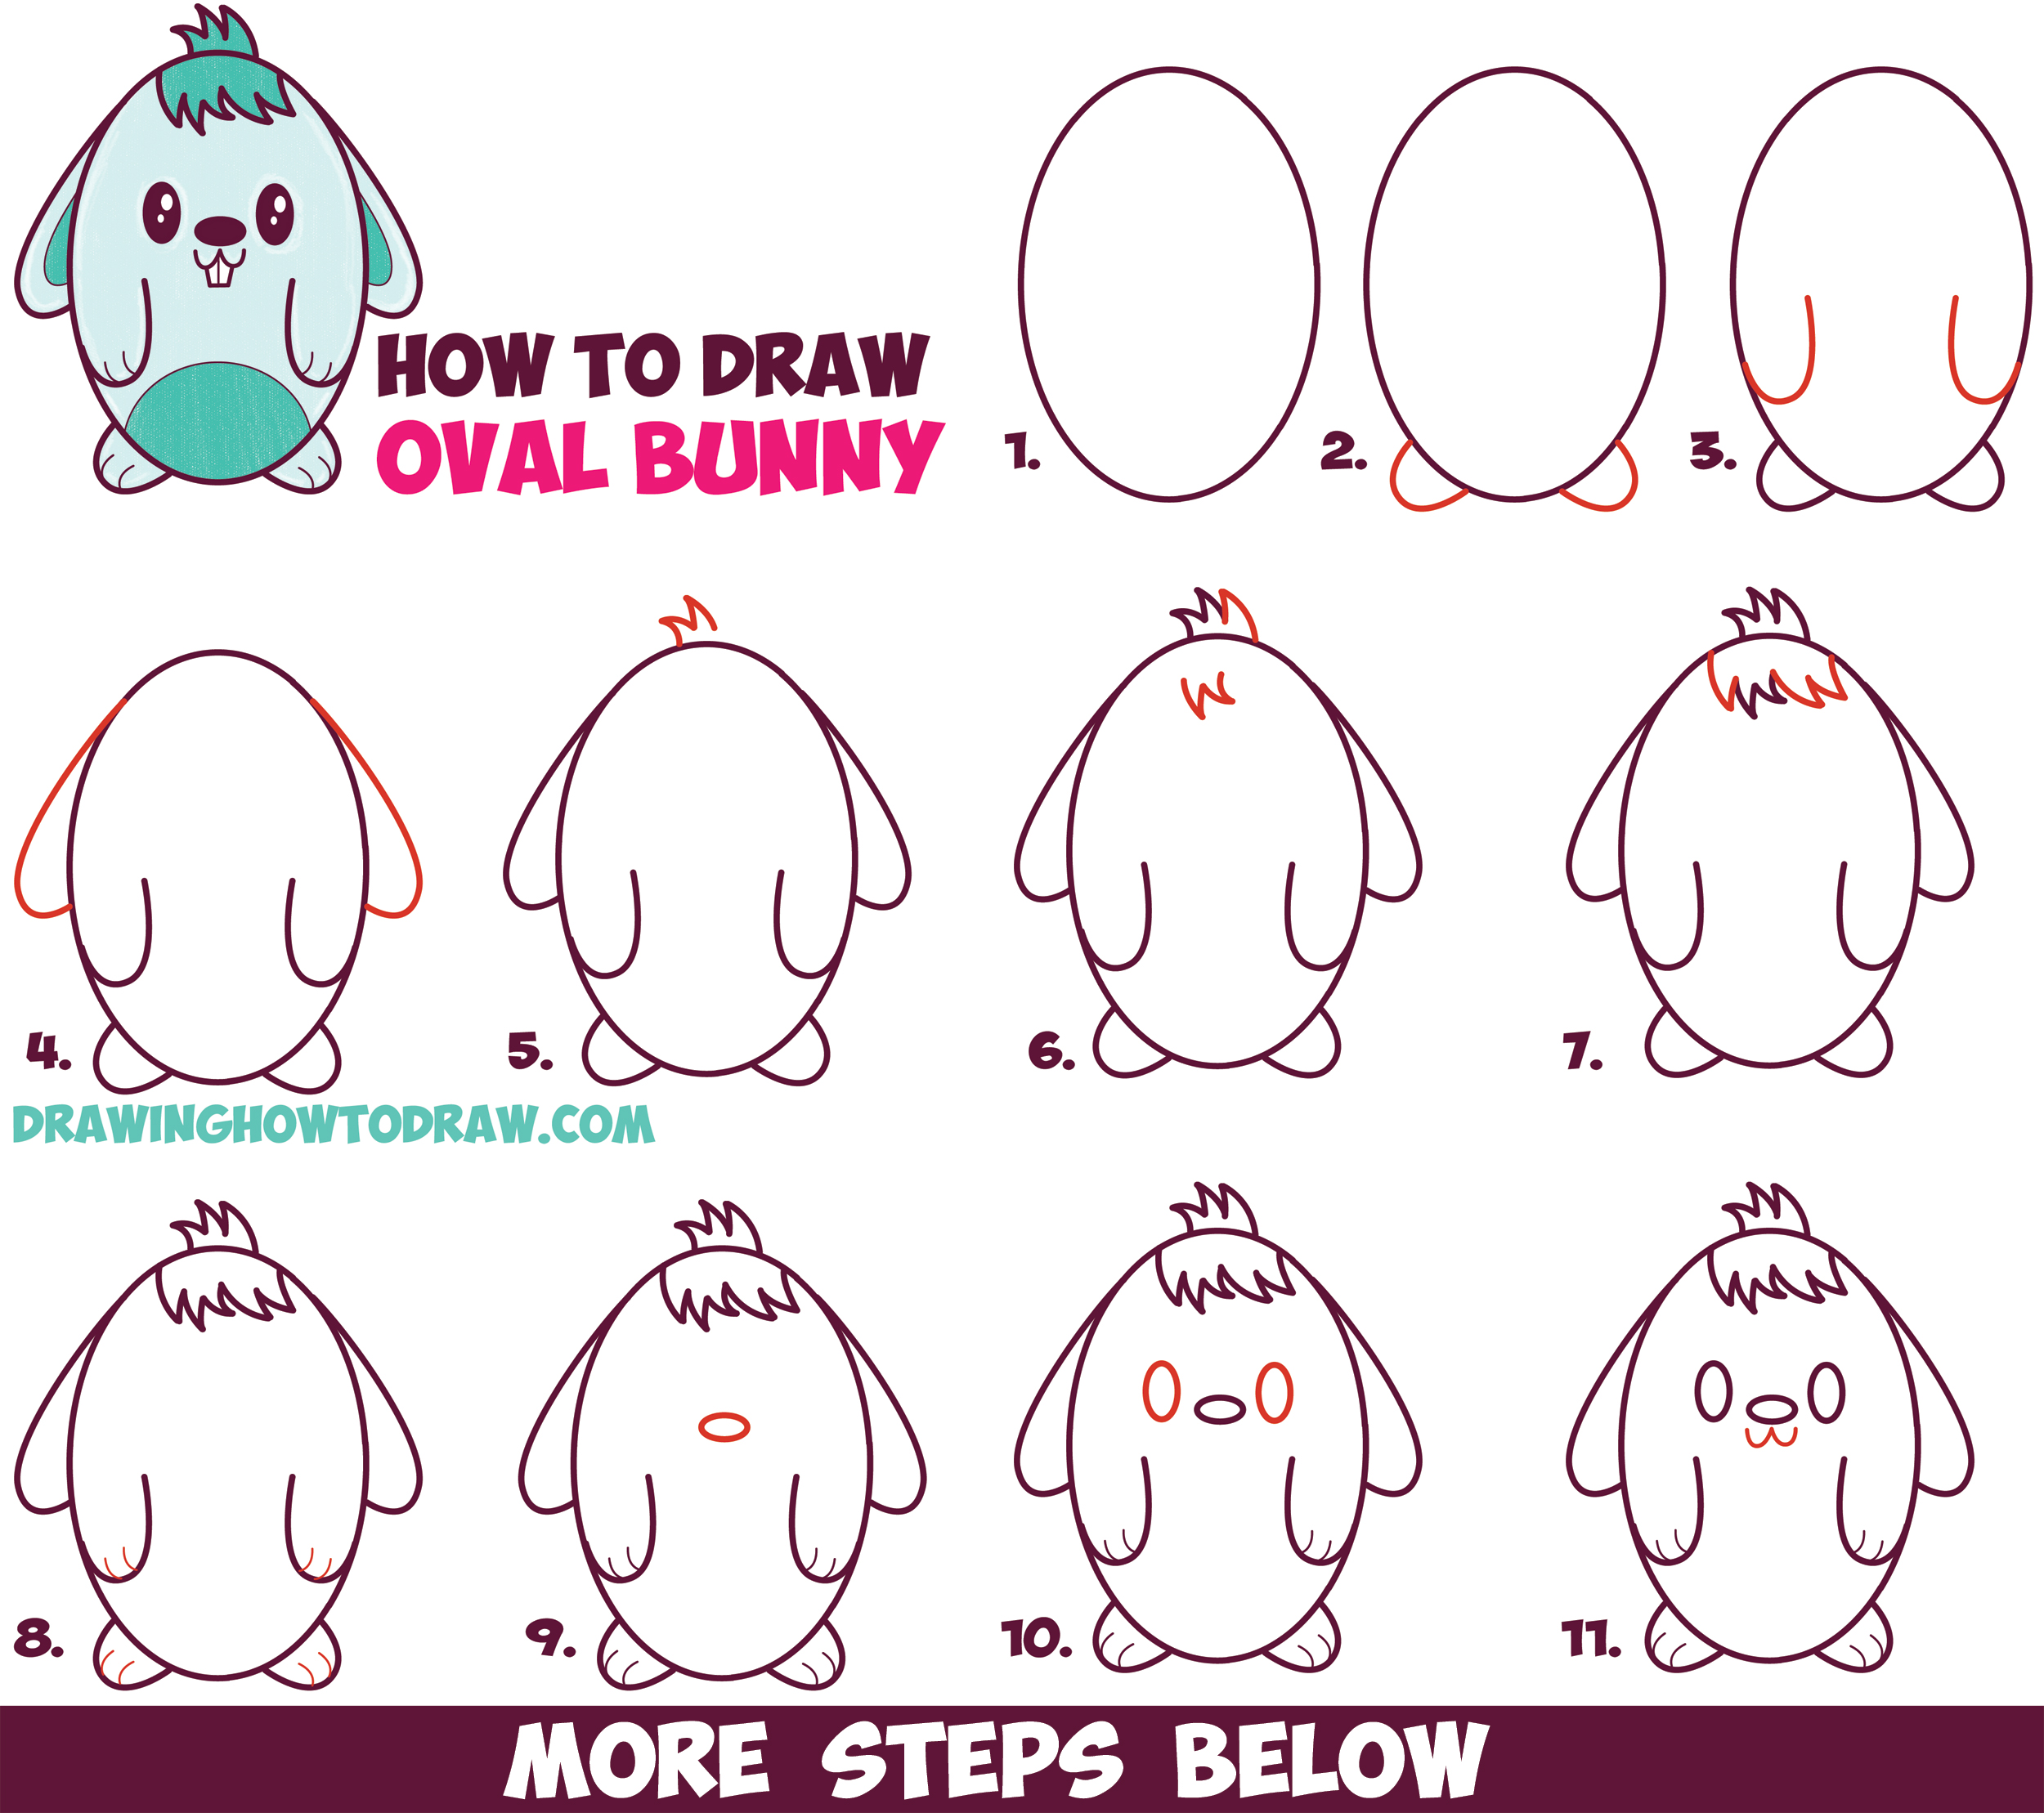 How to draw a cute cartoon bunny rabbit from an oval for How to make cartoon drawings step by step